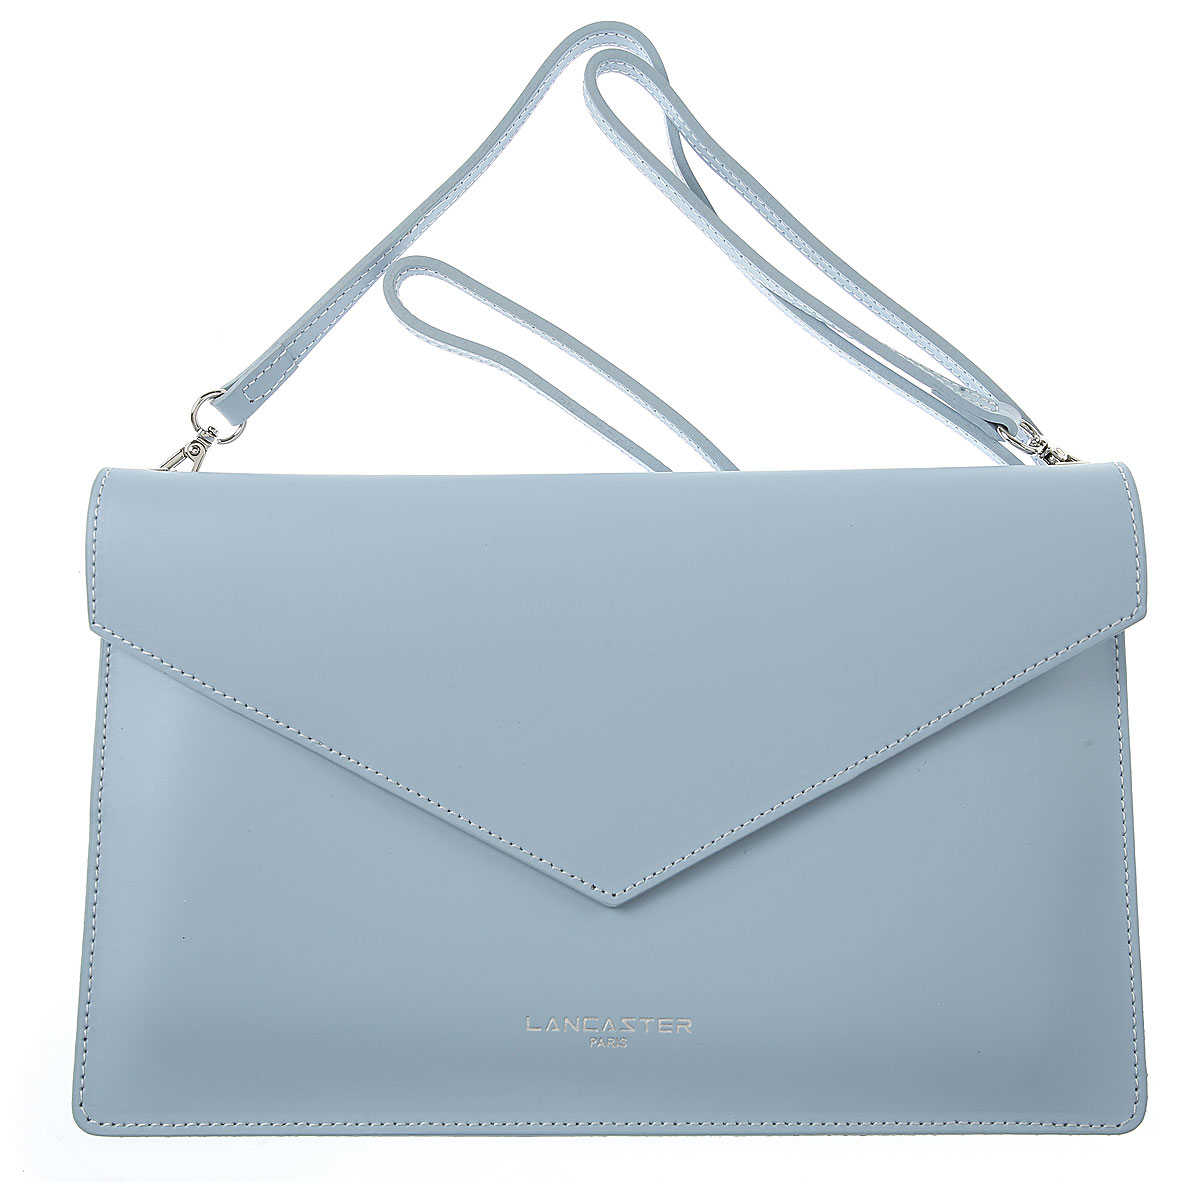 Lancaster Shoulder Bag for Women